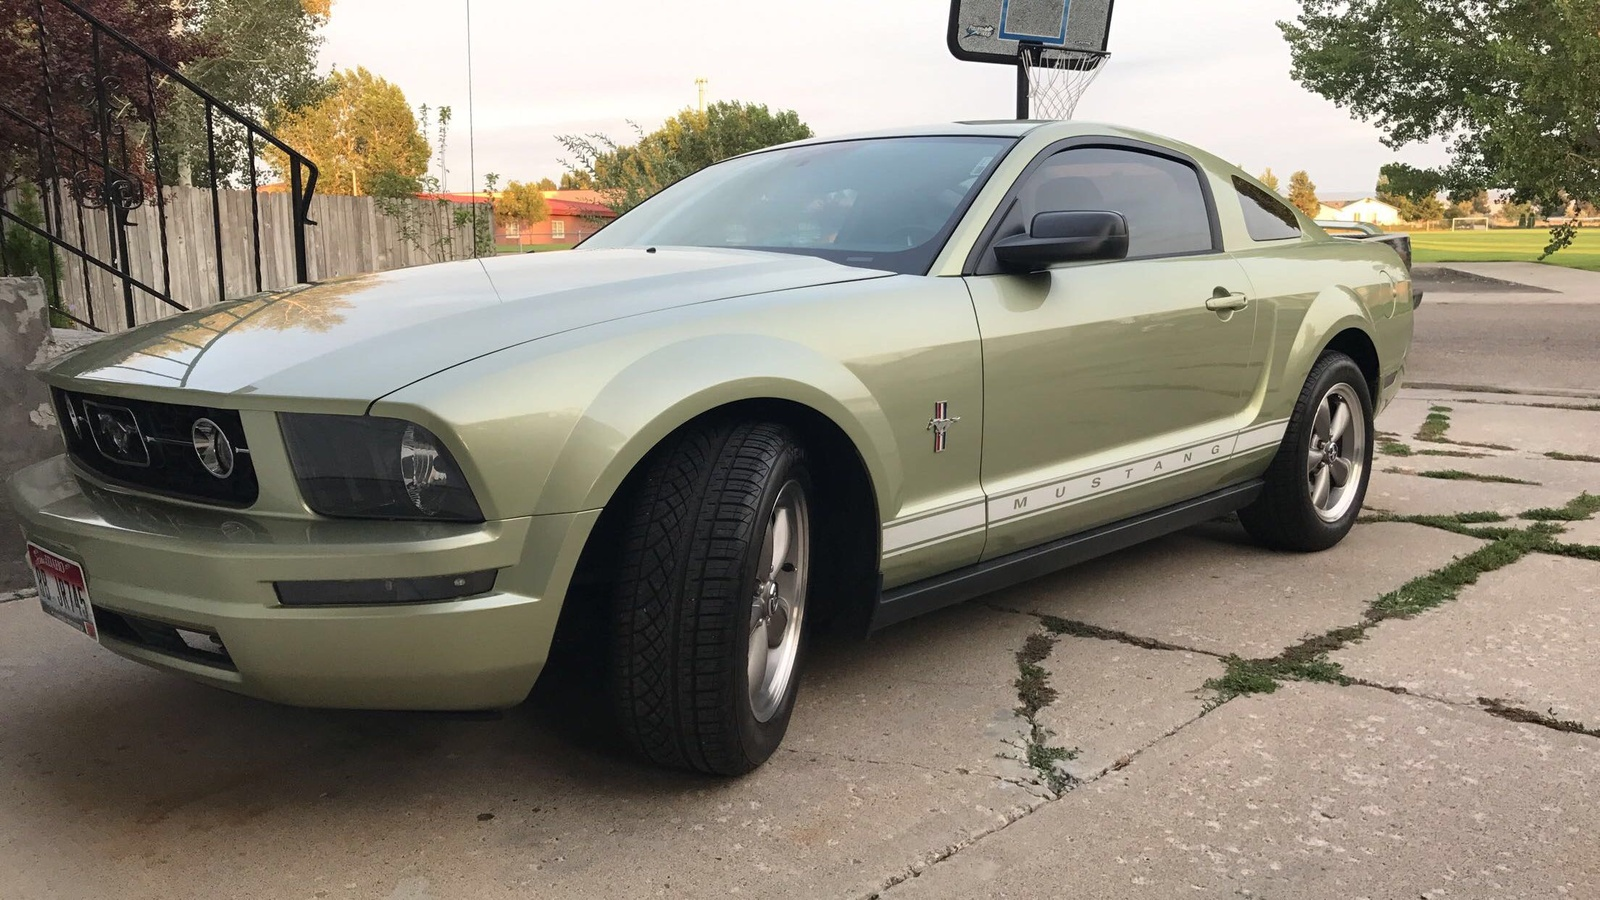 Ford Mustang Questions - Should I turbo my 2006 v6 mustang